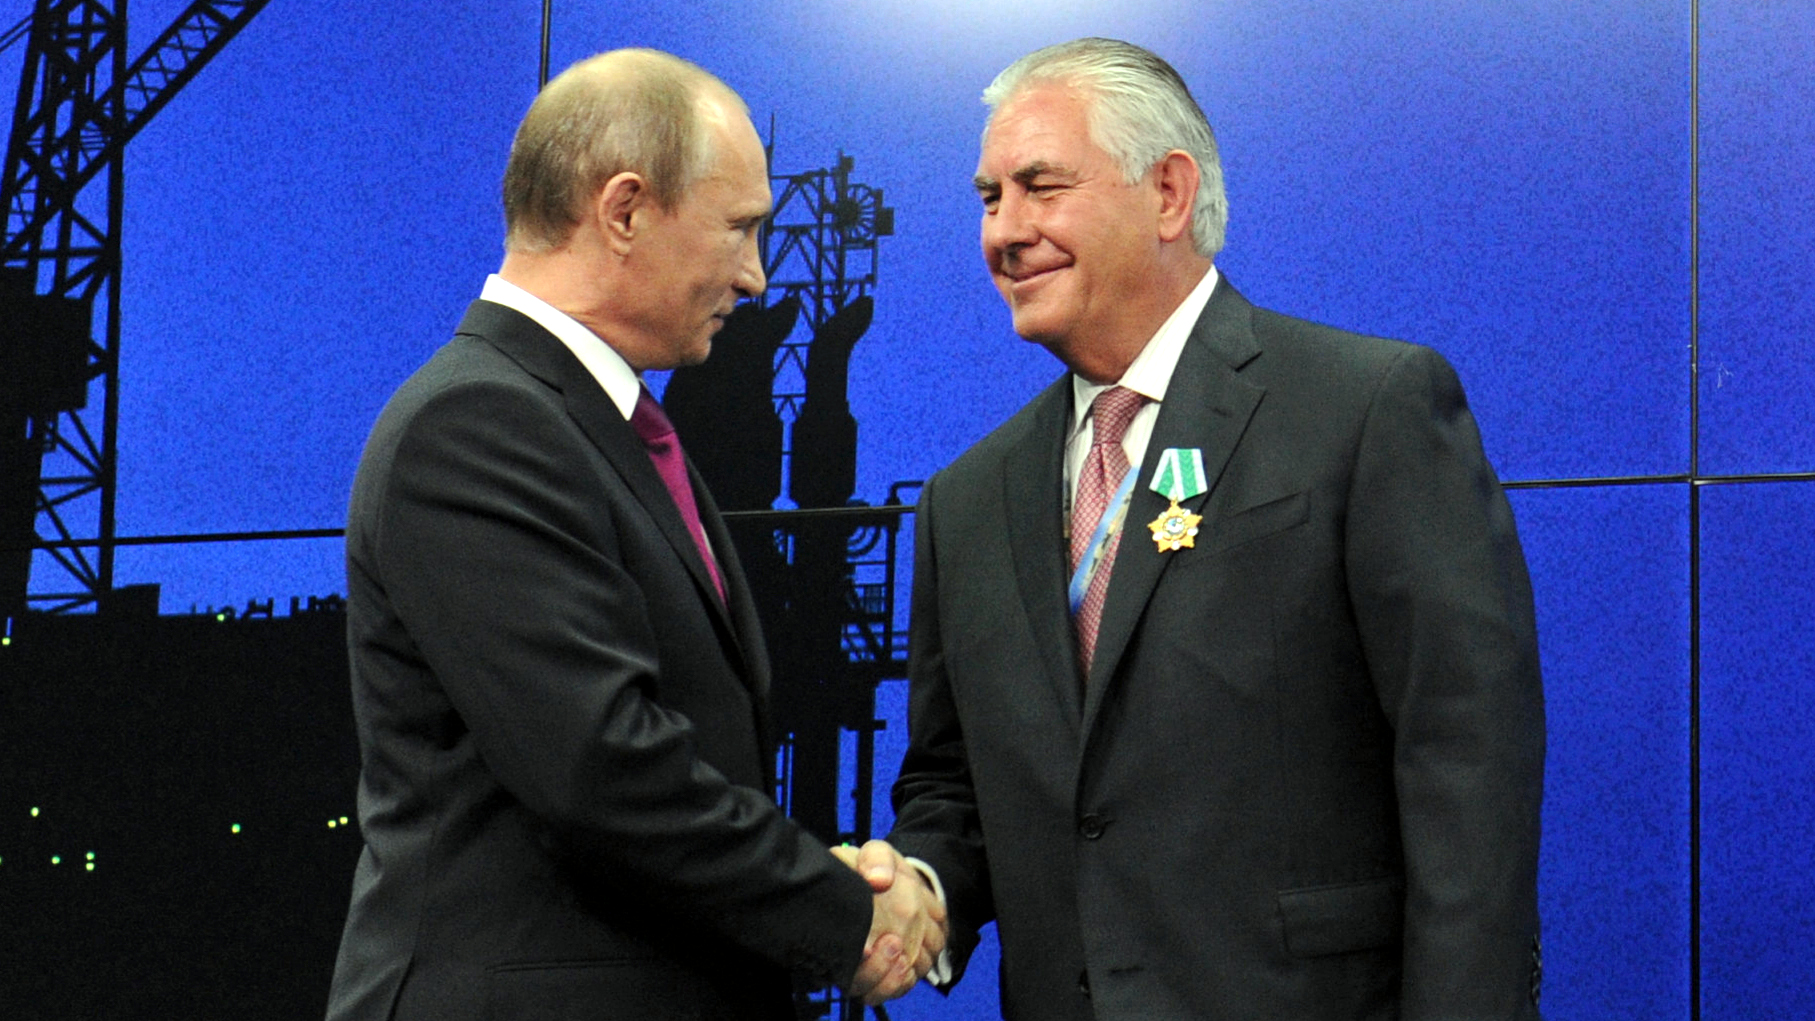 In this photo taken Thursday, June 21, 2012, Russian President Vladimir Putin presents ExxonMobil CEO Rex Tillerson with a Russian medal at an award ceremony of heads and employees of energy companies at the St. Petersburg economic forum in St. Petersburg, Russia.  (